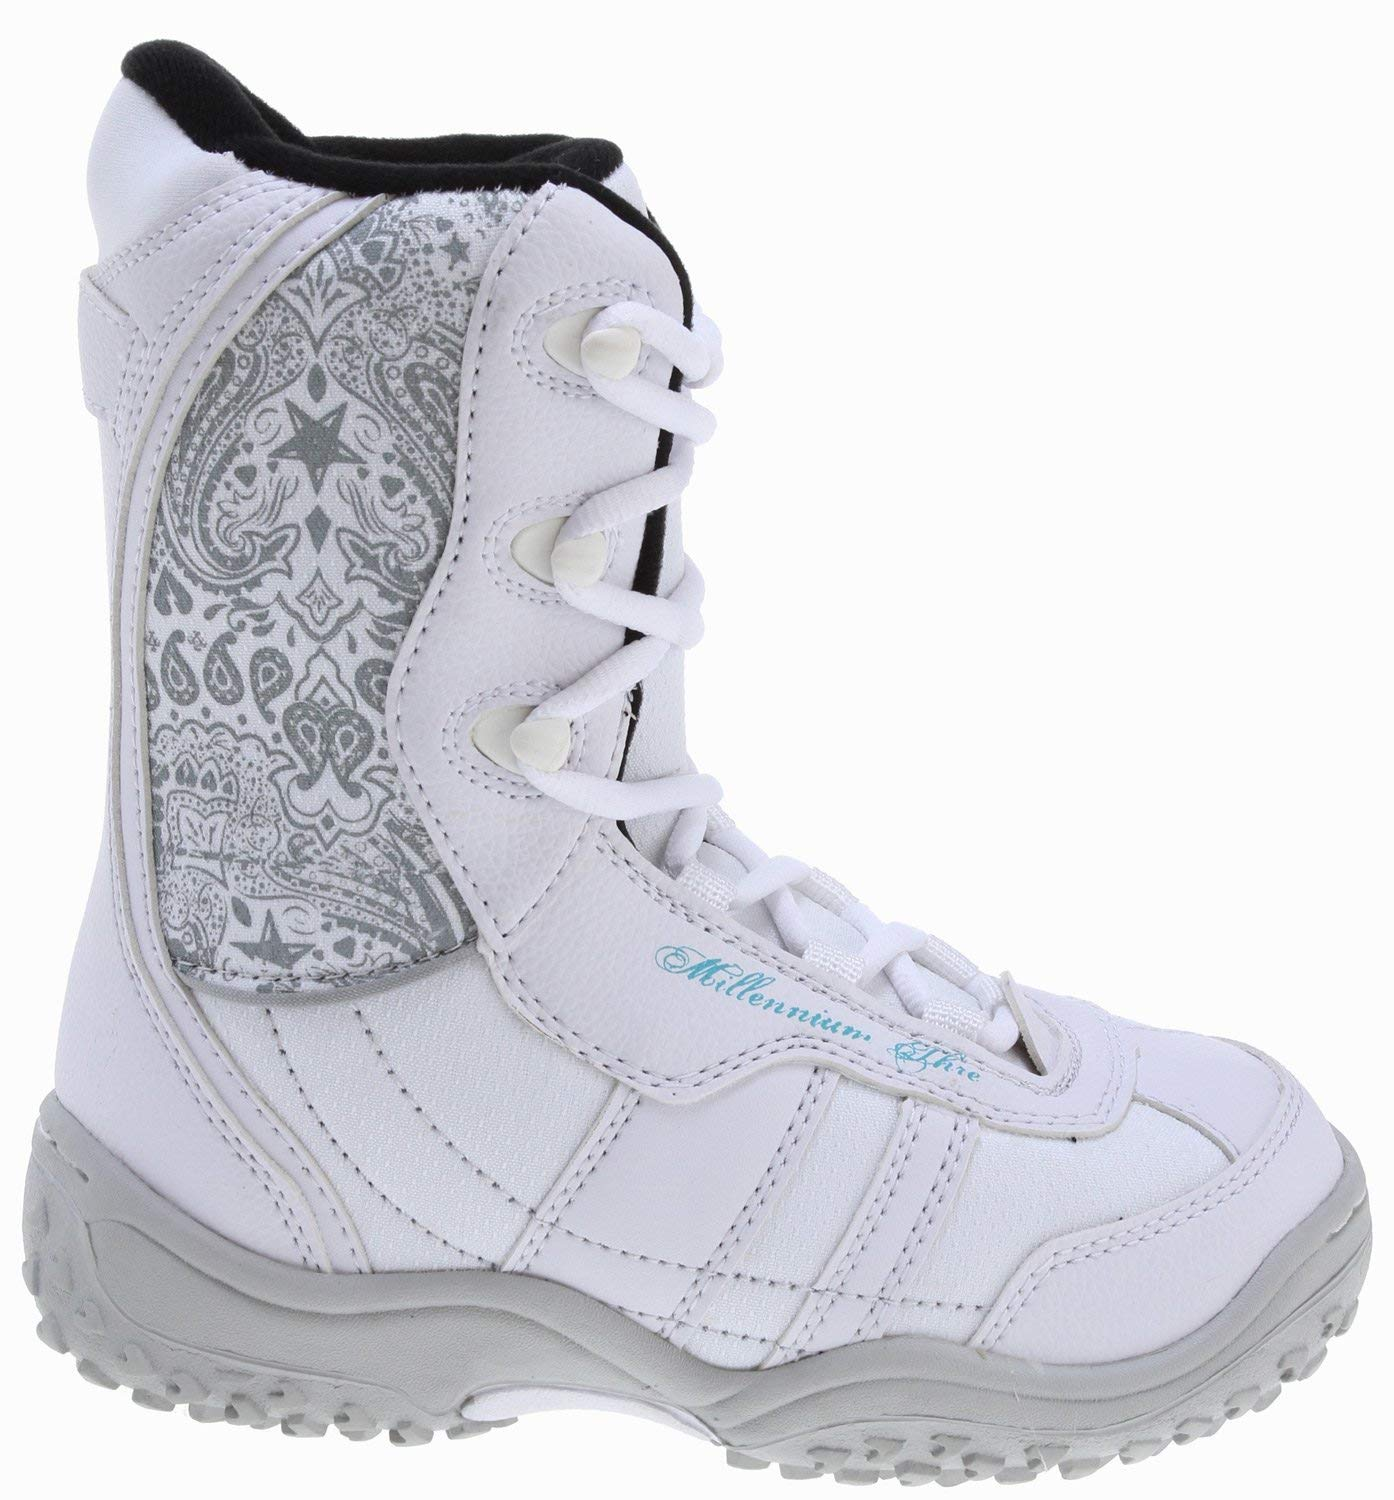 8abb86c6ba62 Get Quotations · M3 Venus Jr. Snowboard Boots White Grey Youth